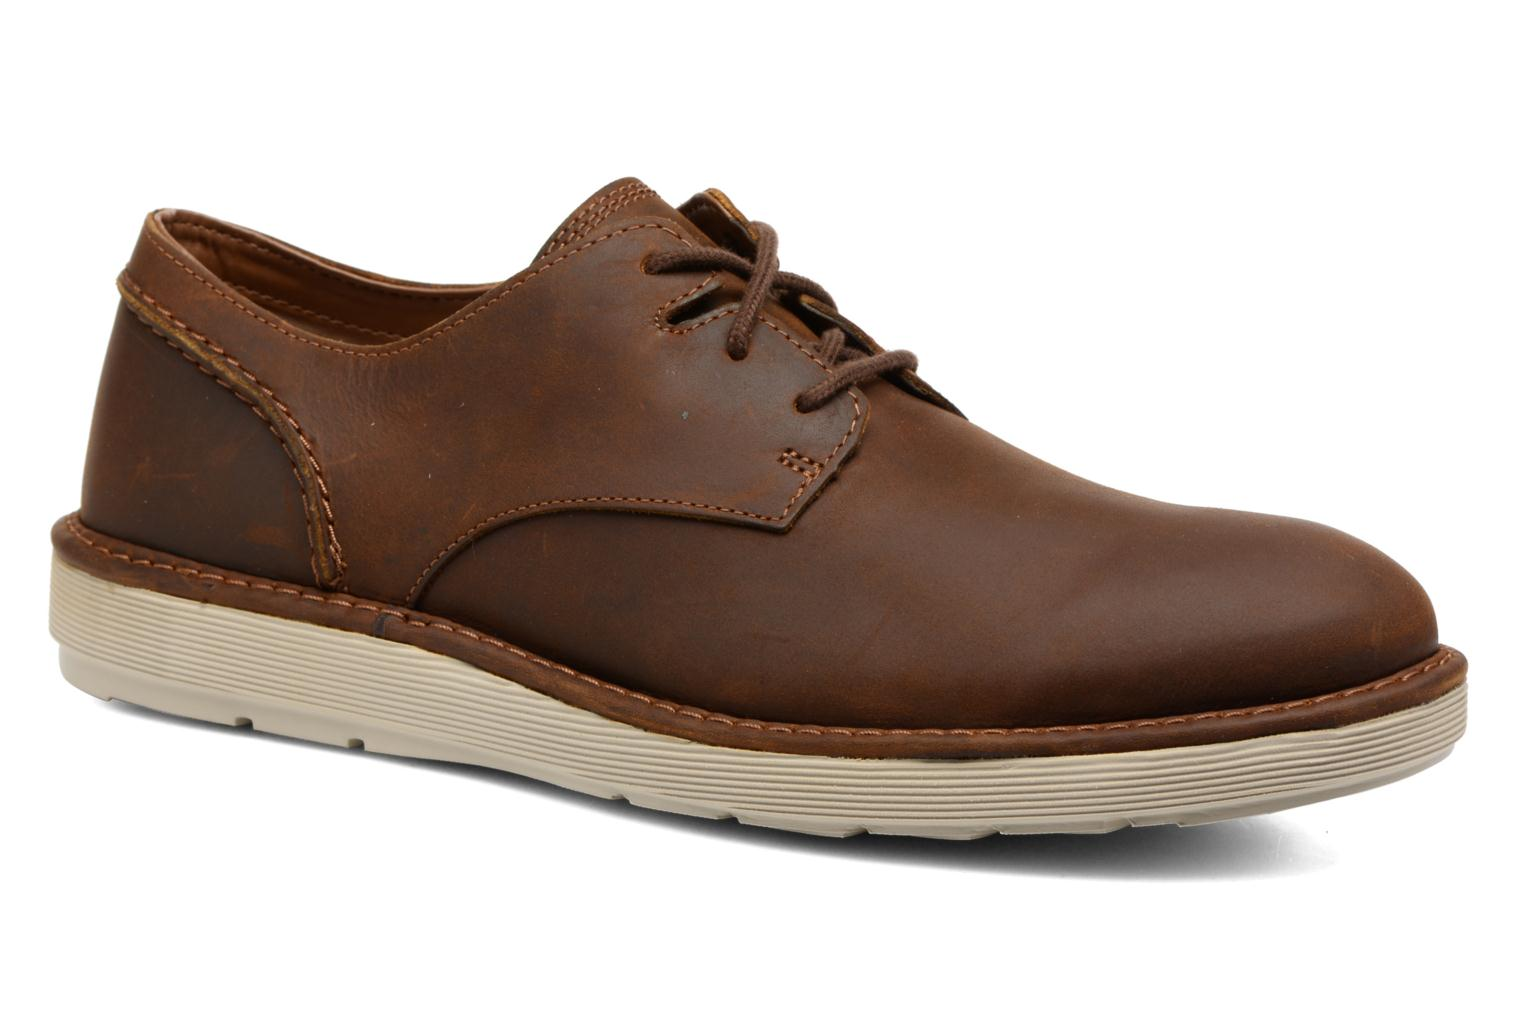 Clarks Chaussures FAYEMAN LACE Clarks solde lTbnK